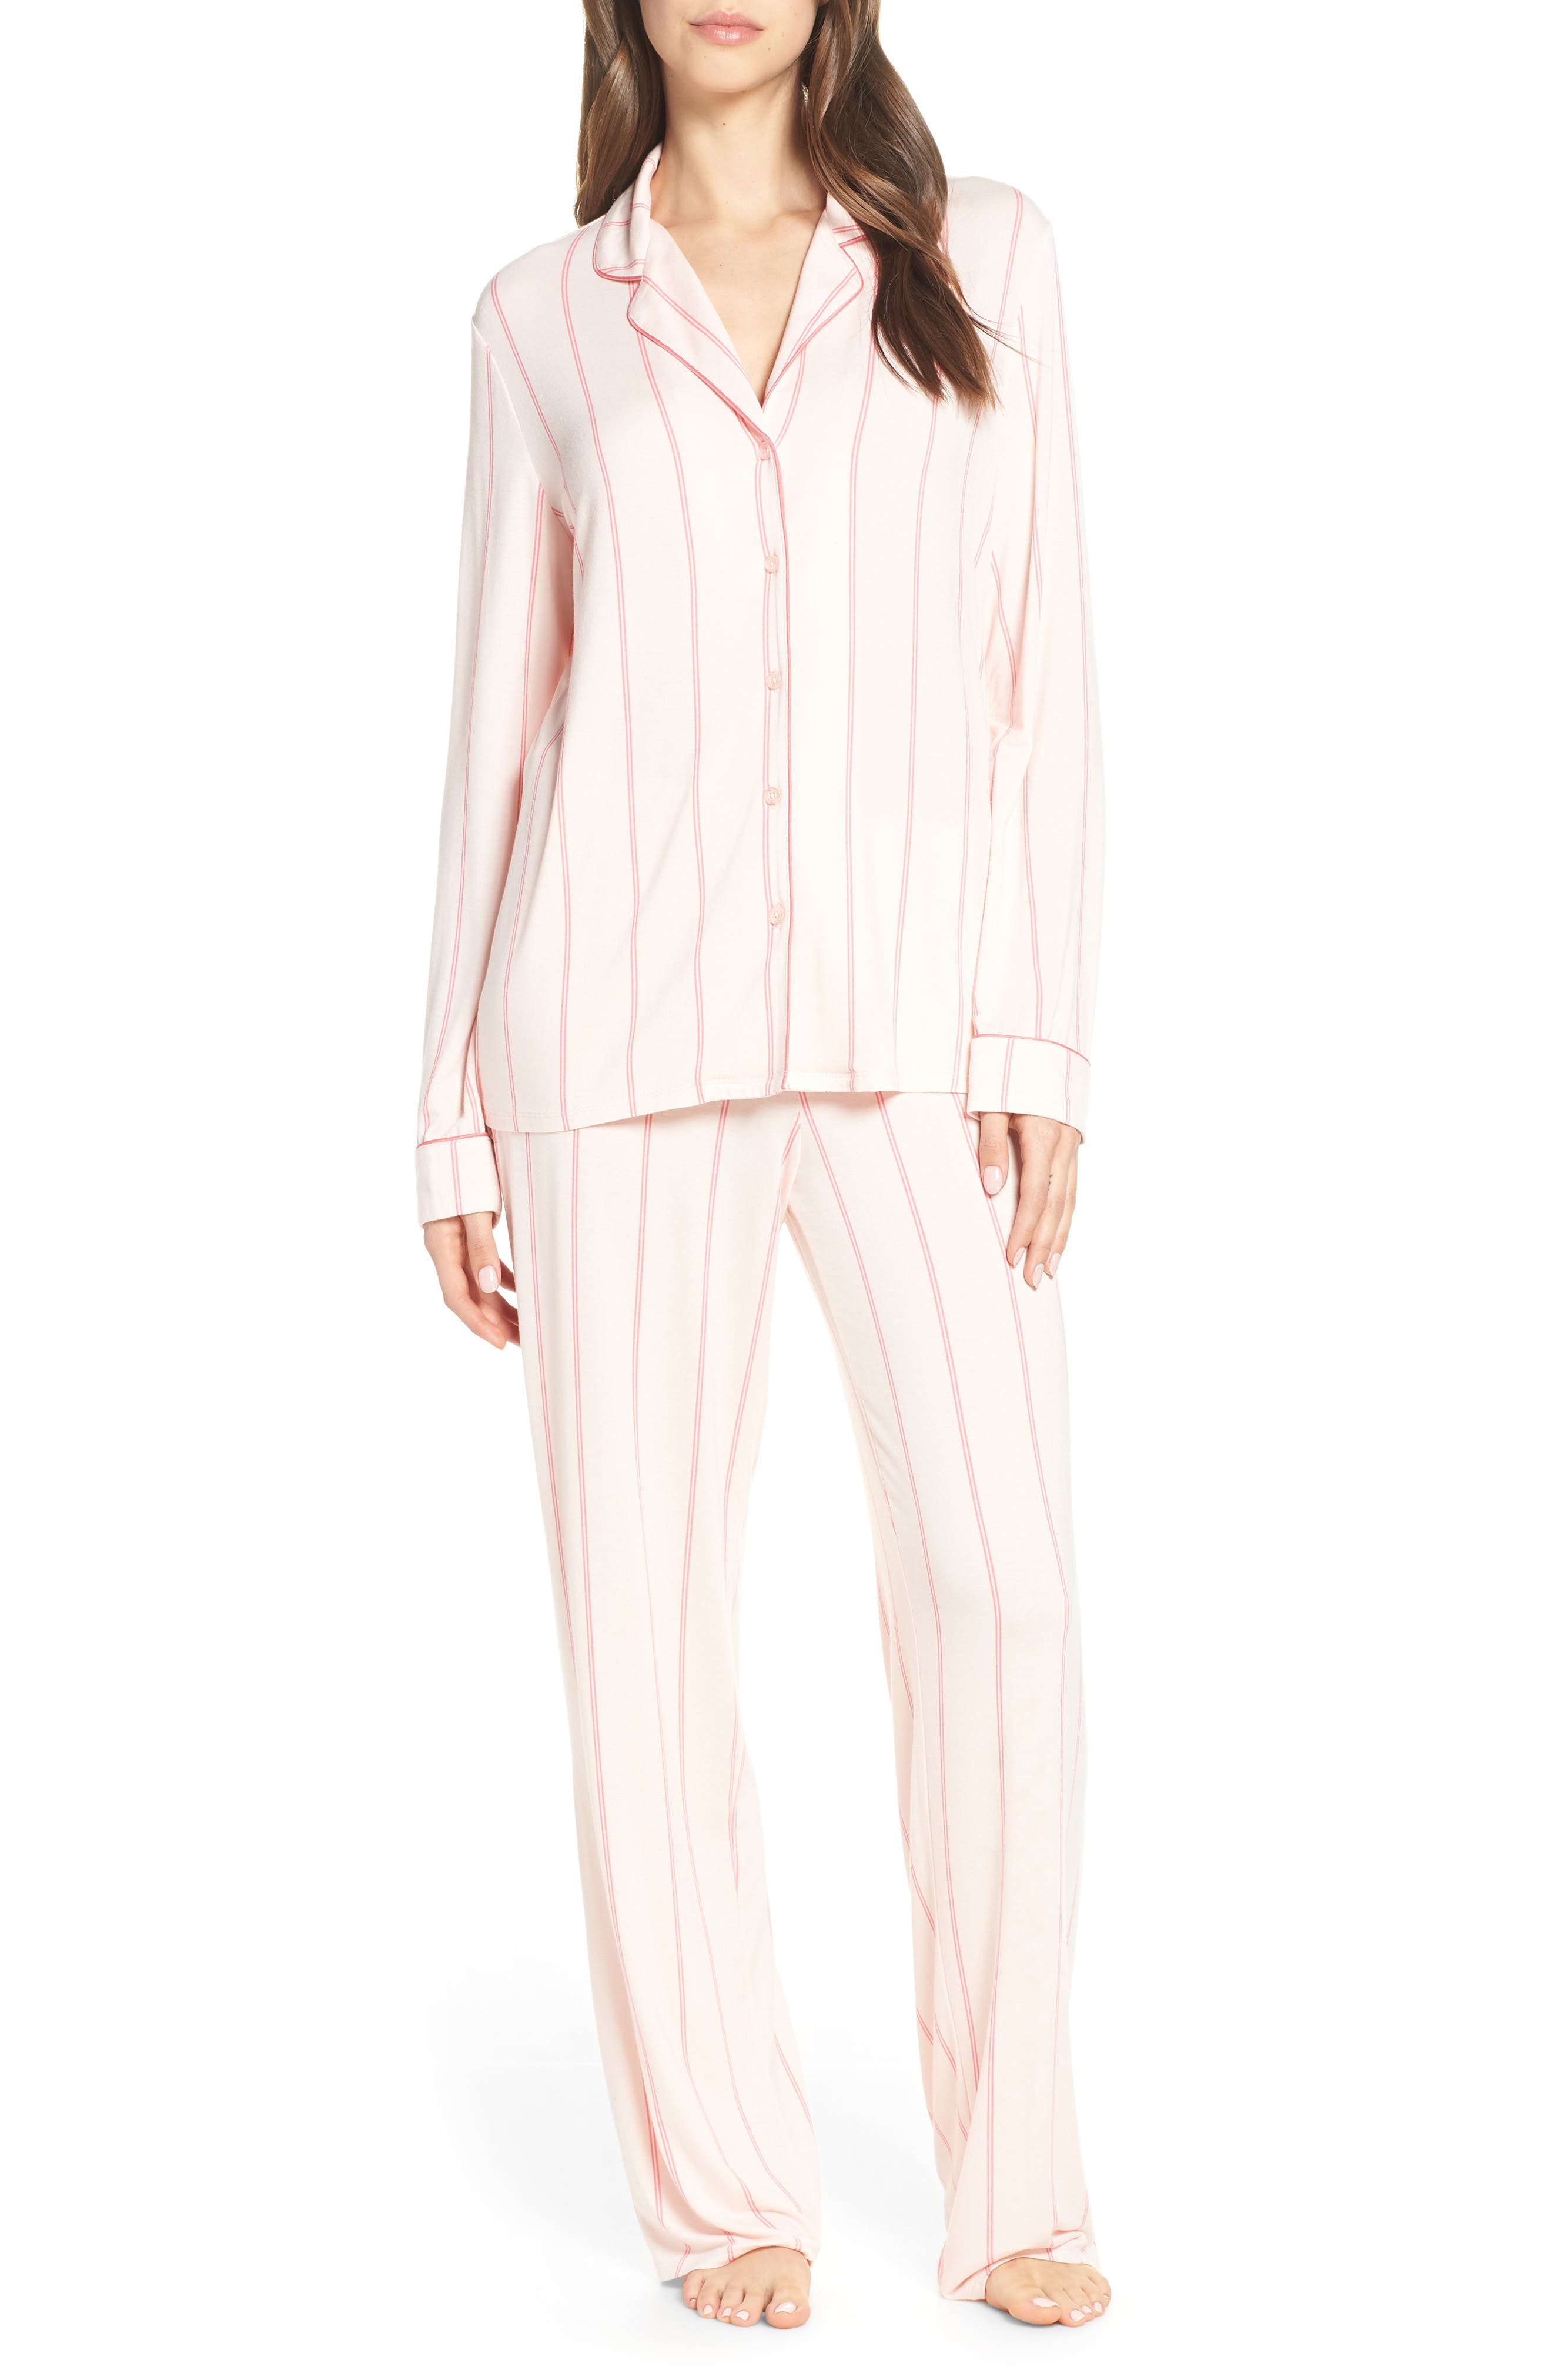 NORDSTROM LINGERIE Moonlight Pajamas, Main, color, PINK CRYSTAL MICRO STRIPE